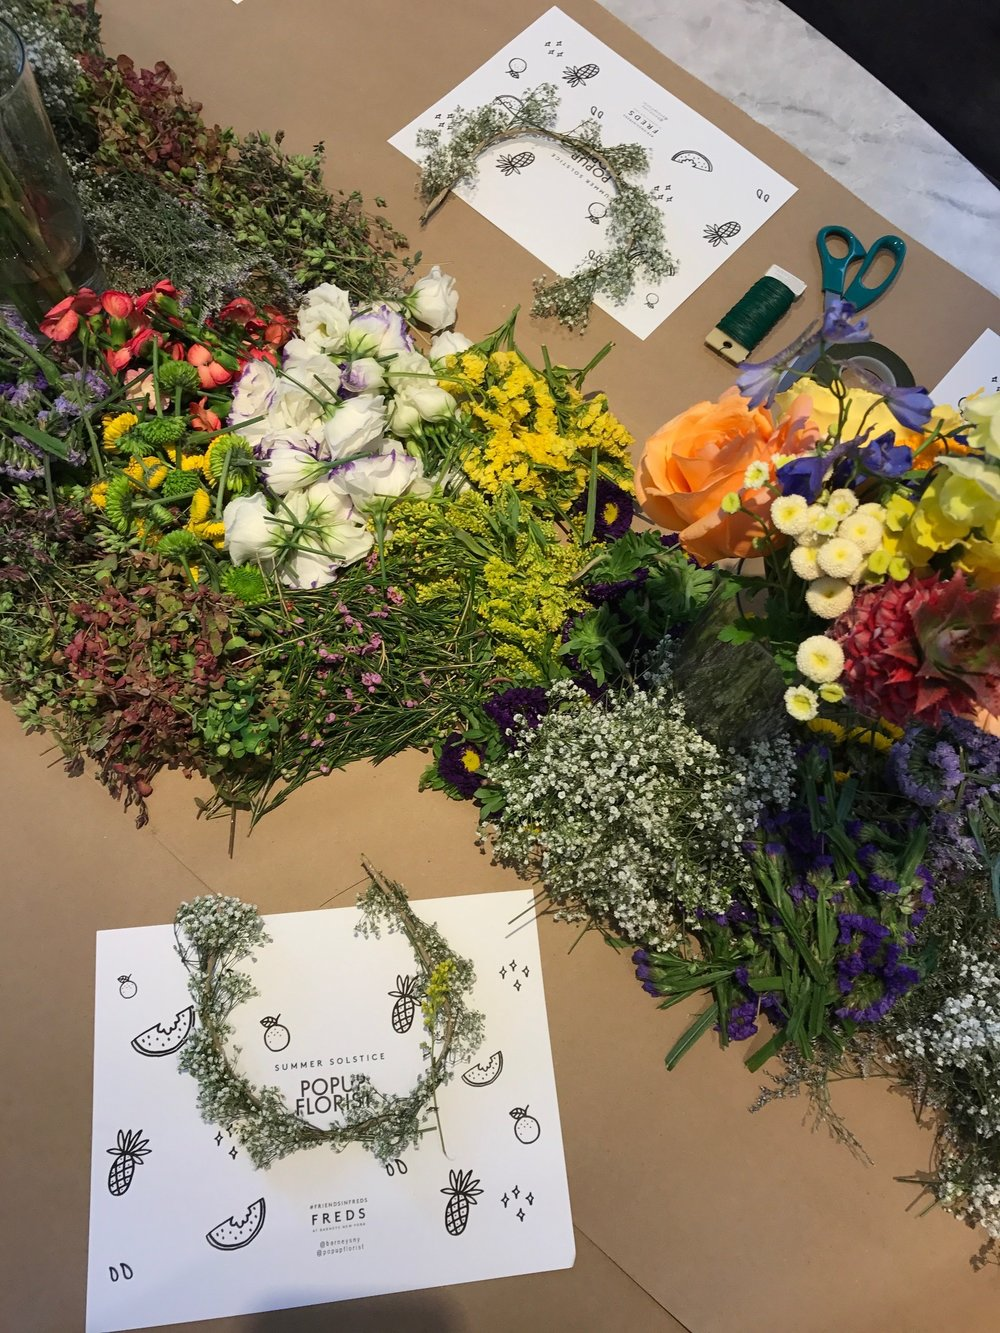 Barneys NY x The POPUP FLORIST Summer Solstice Breakfast at Freds